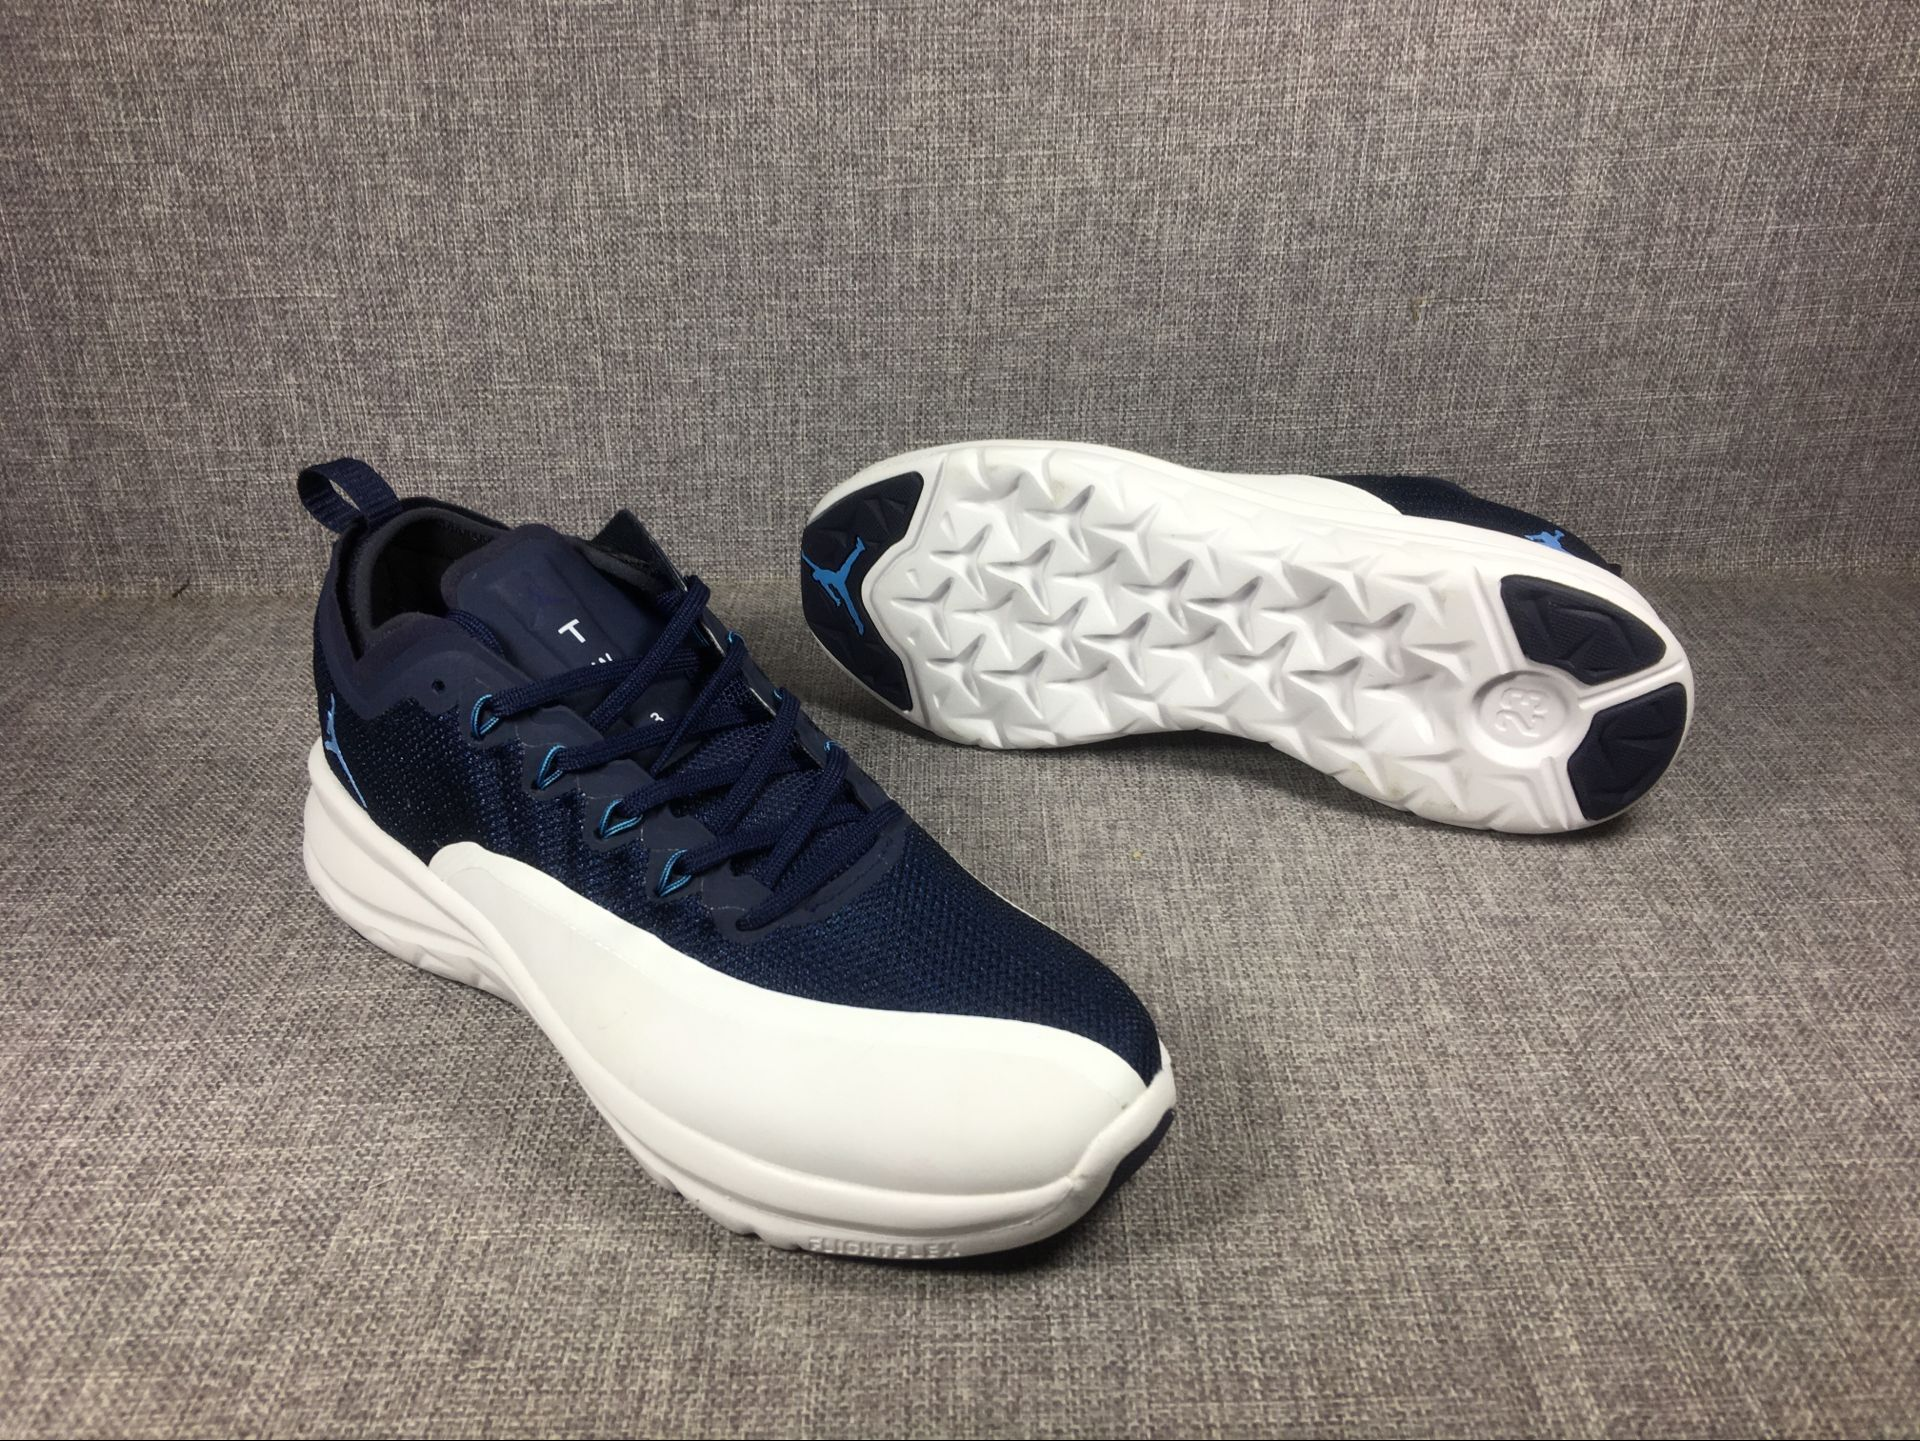 2018 New Air Jordan 12 Low Black White Shoes